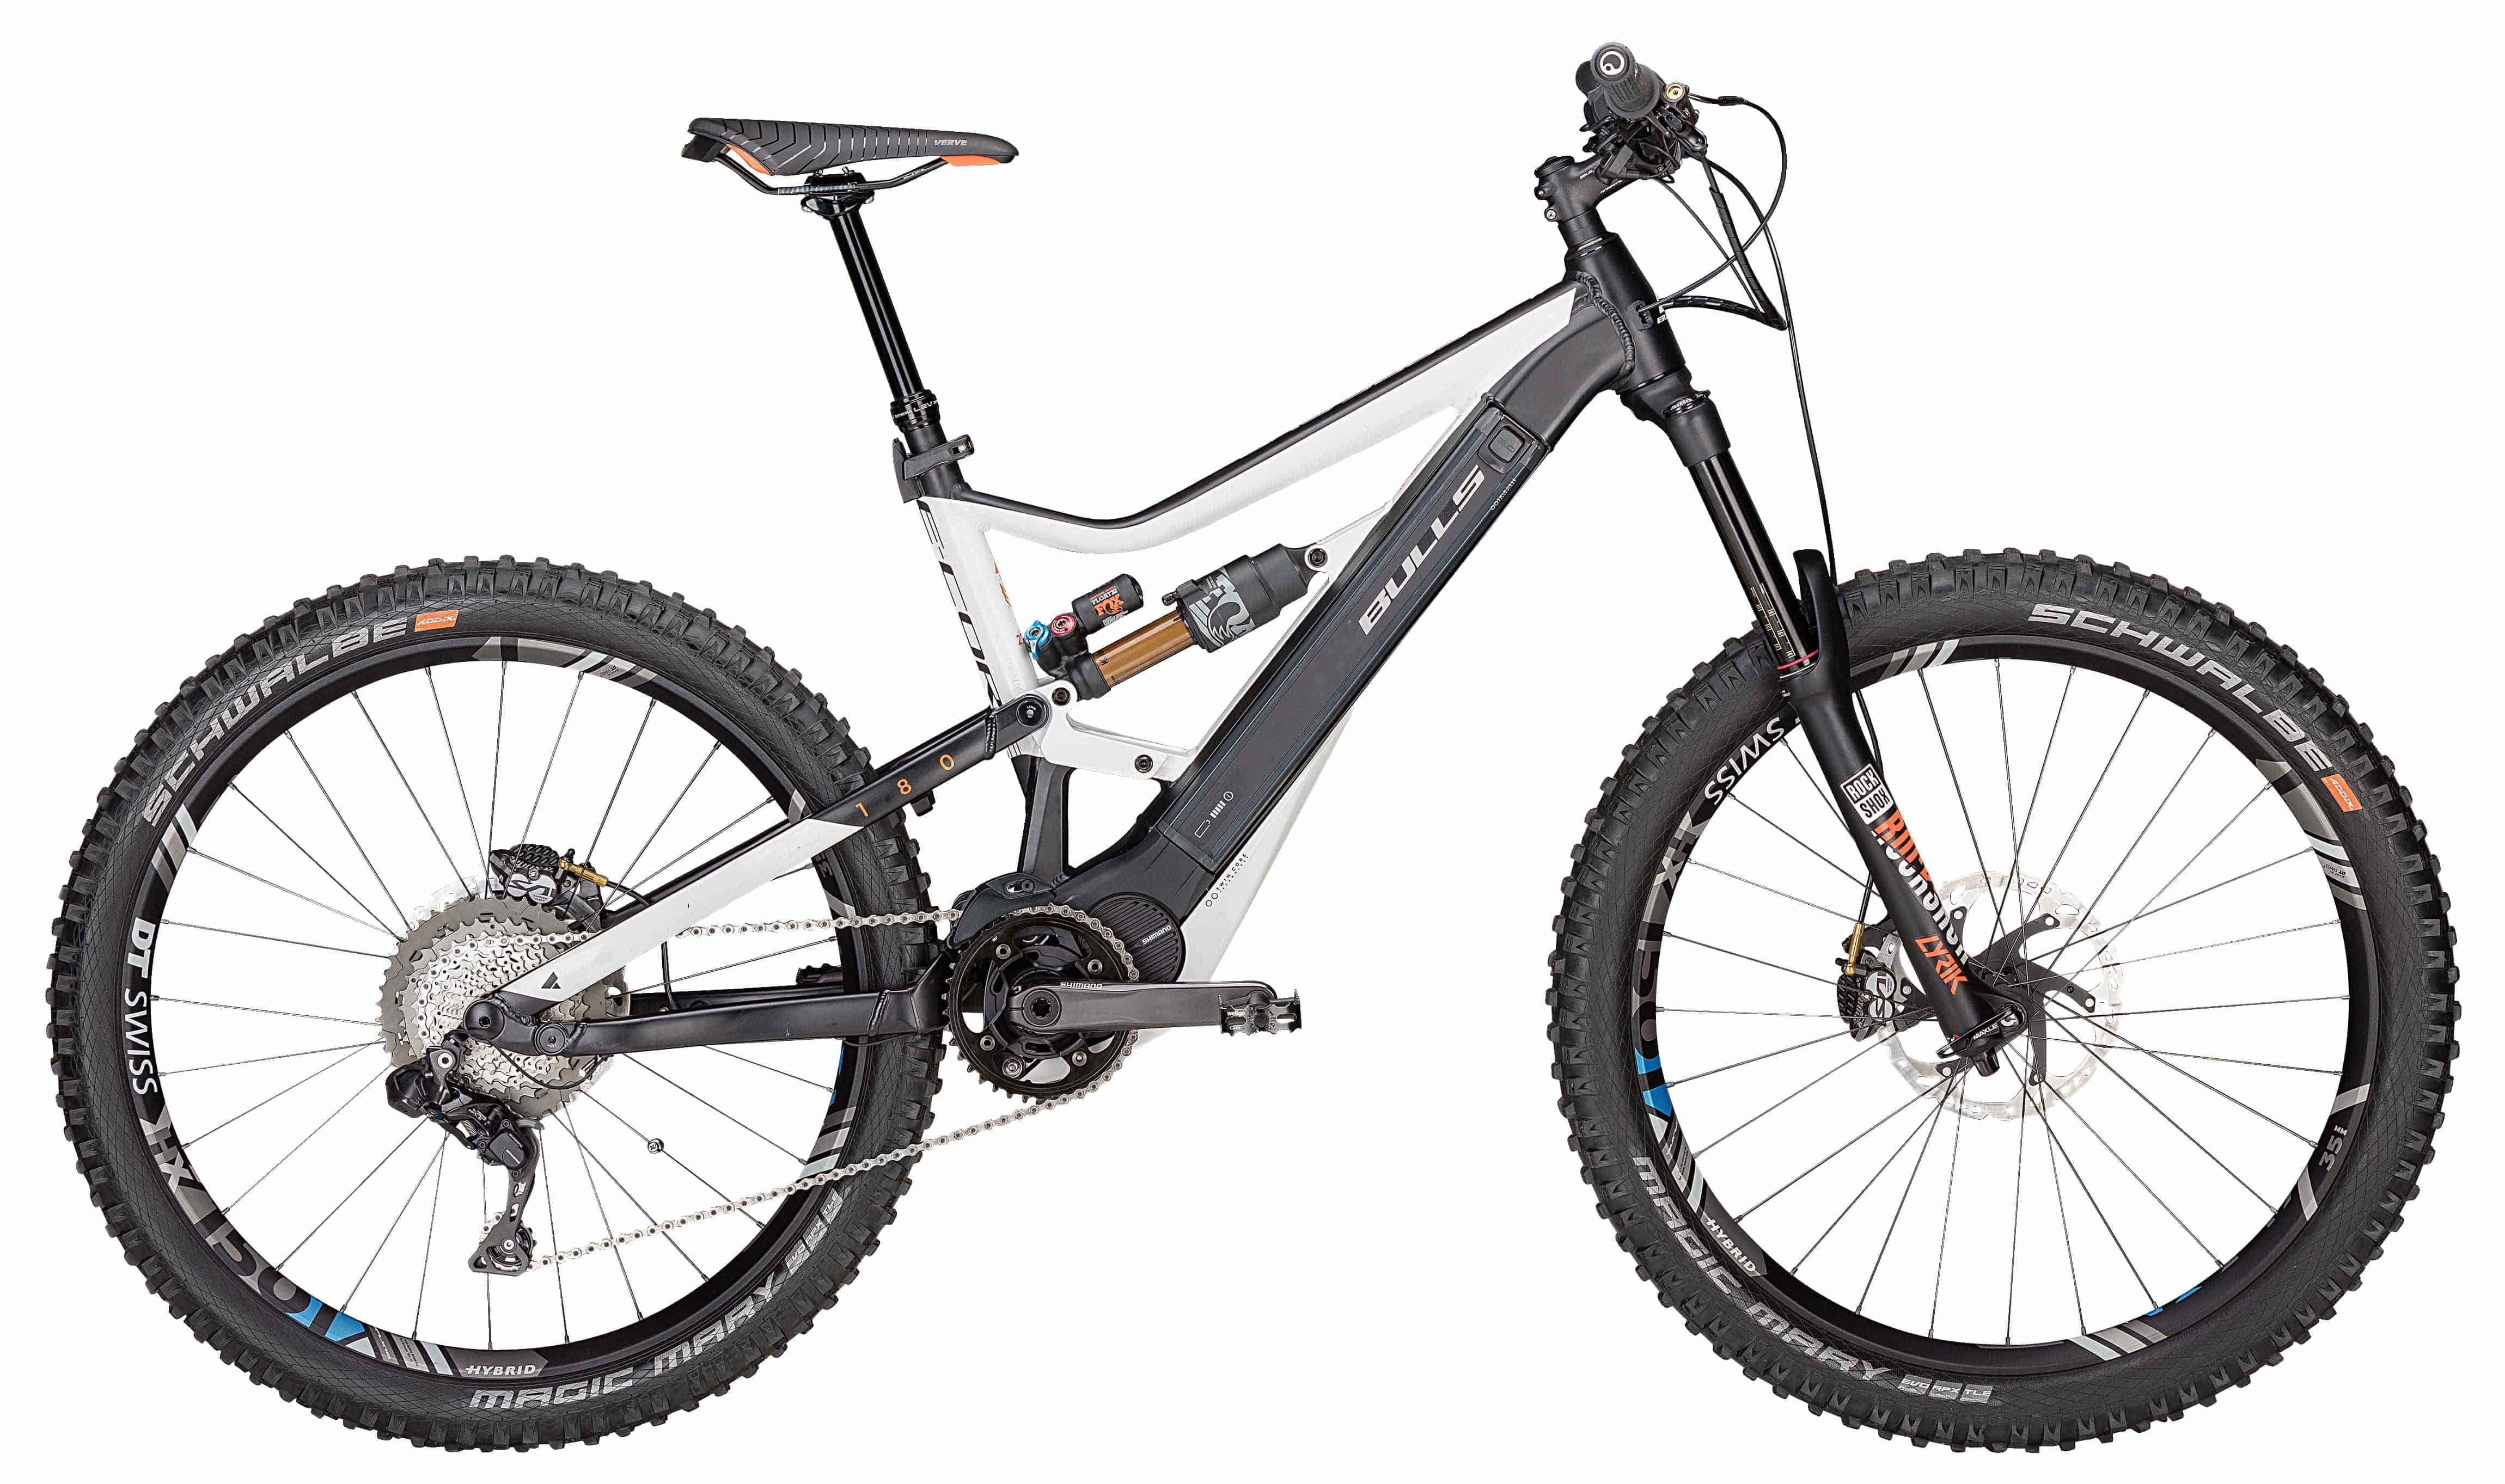 Top Rated Bulls Electric Bikes Arizona dealer, Bulls dealer, Bulls bike dealer, Bulls bicycle dealer, Bulls bikes, Bulls electric bikes, Bulls bicycles, Bulls